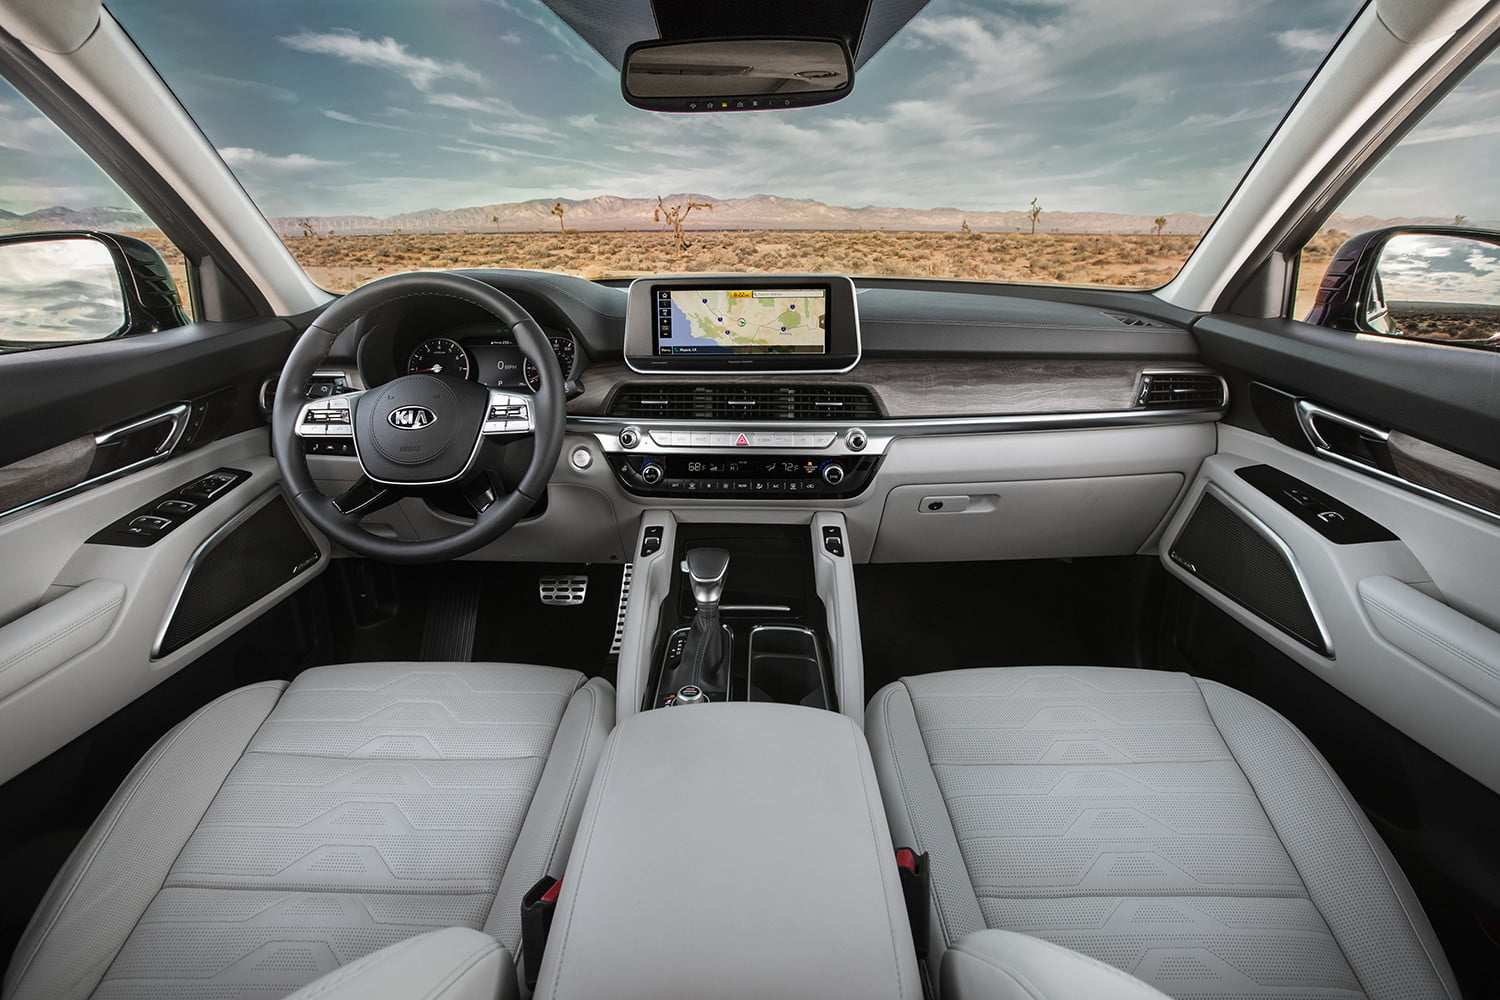 24 Gallery of Kia Telluride 2020 Interior Ratings for Kia Telluride 2020 Interior